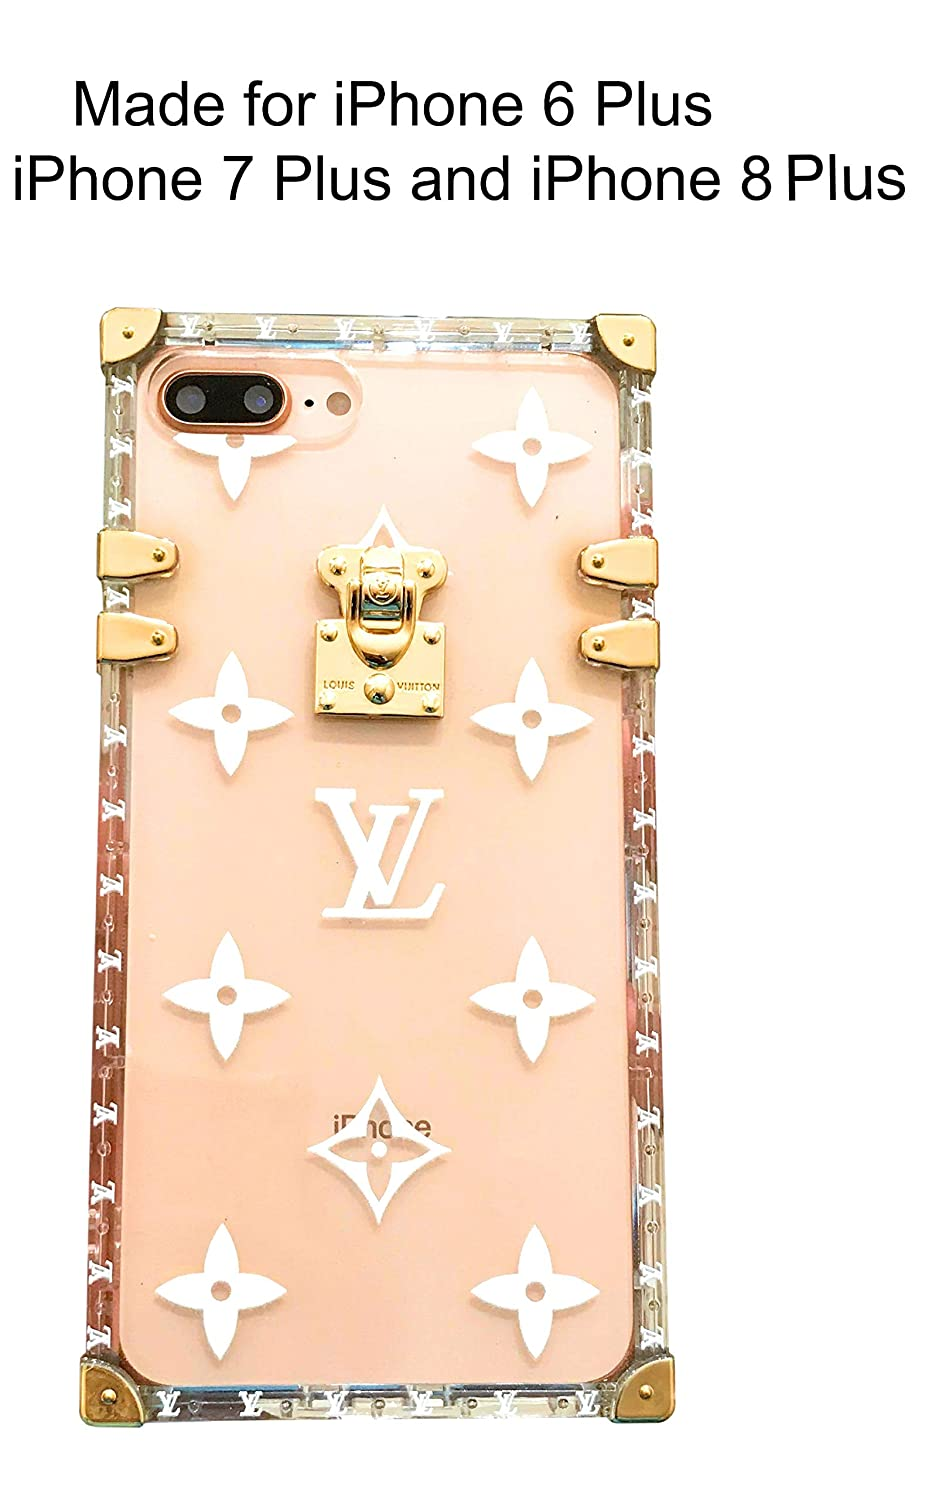 top 3 louis vuitton iphone 7 case2 louis vuitton iphone 7 case review \u2013 iphone 6 7 8 plus clear case elegant luxury pu designer graphic cover case for apple iphone 6, 7 and iphone 8 plus